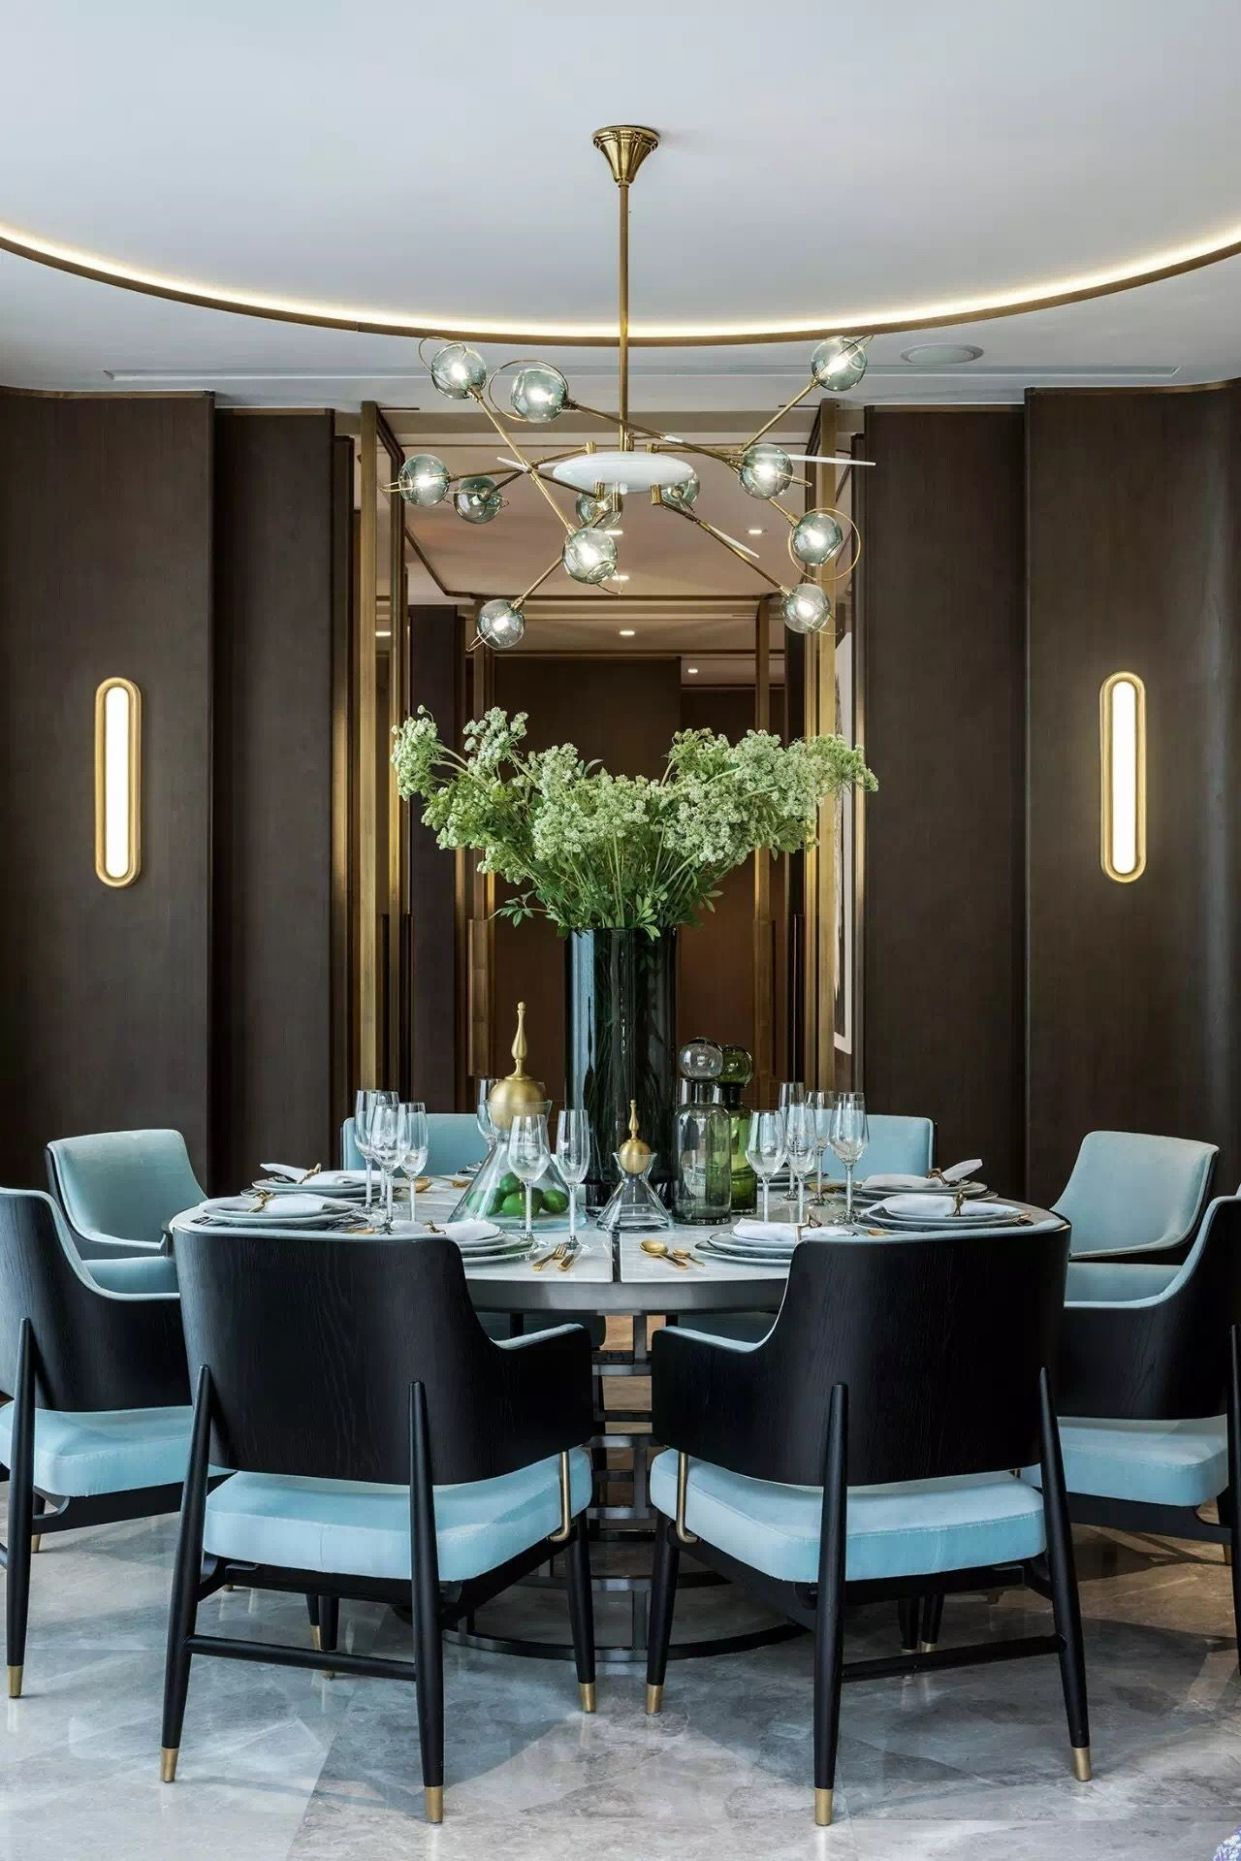 Dining room decor ideas | Inspirations to help you to decor your ..